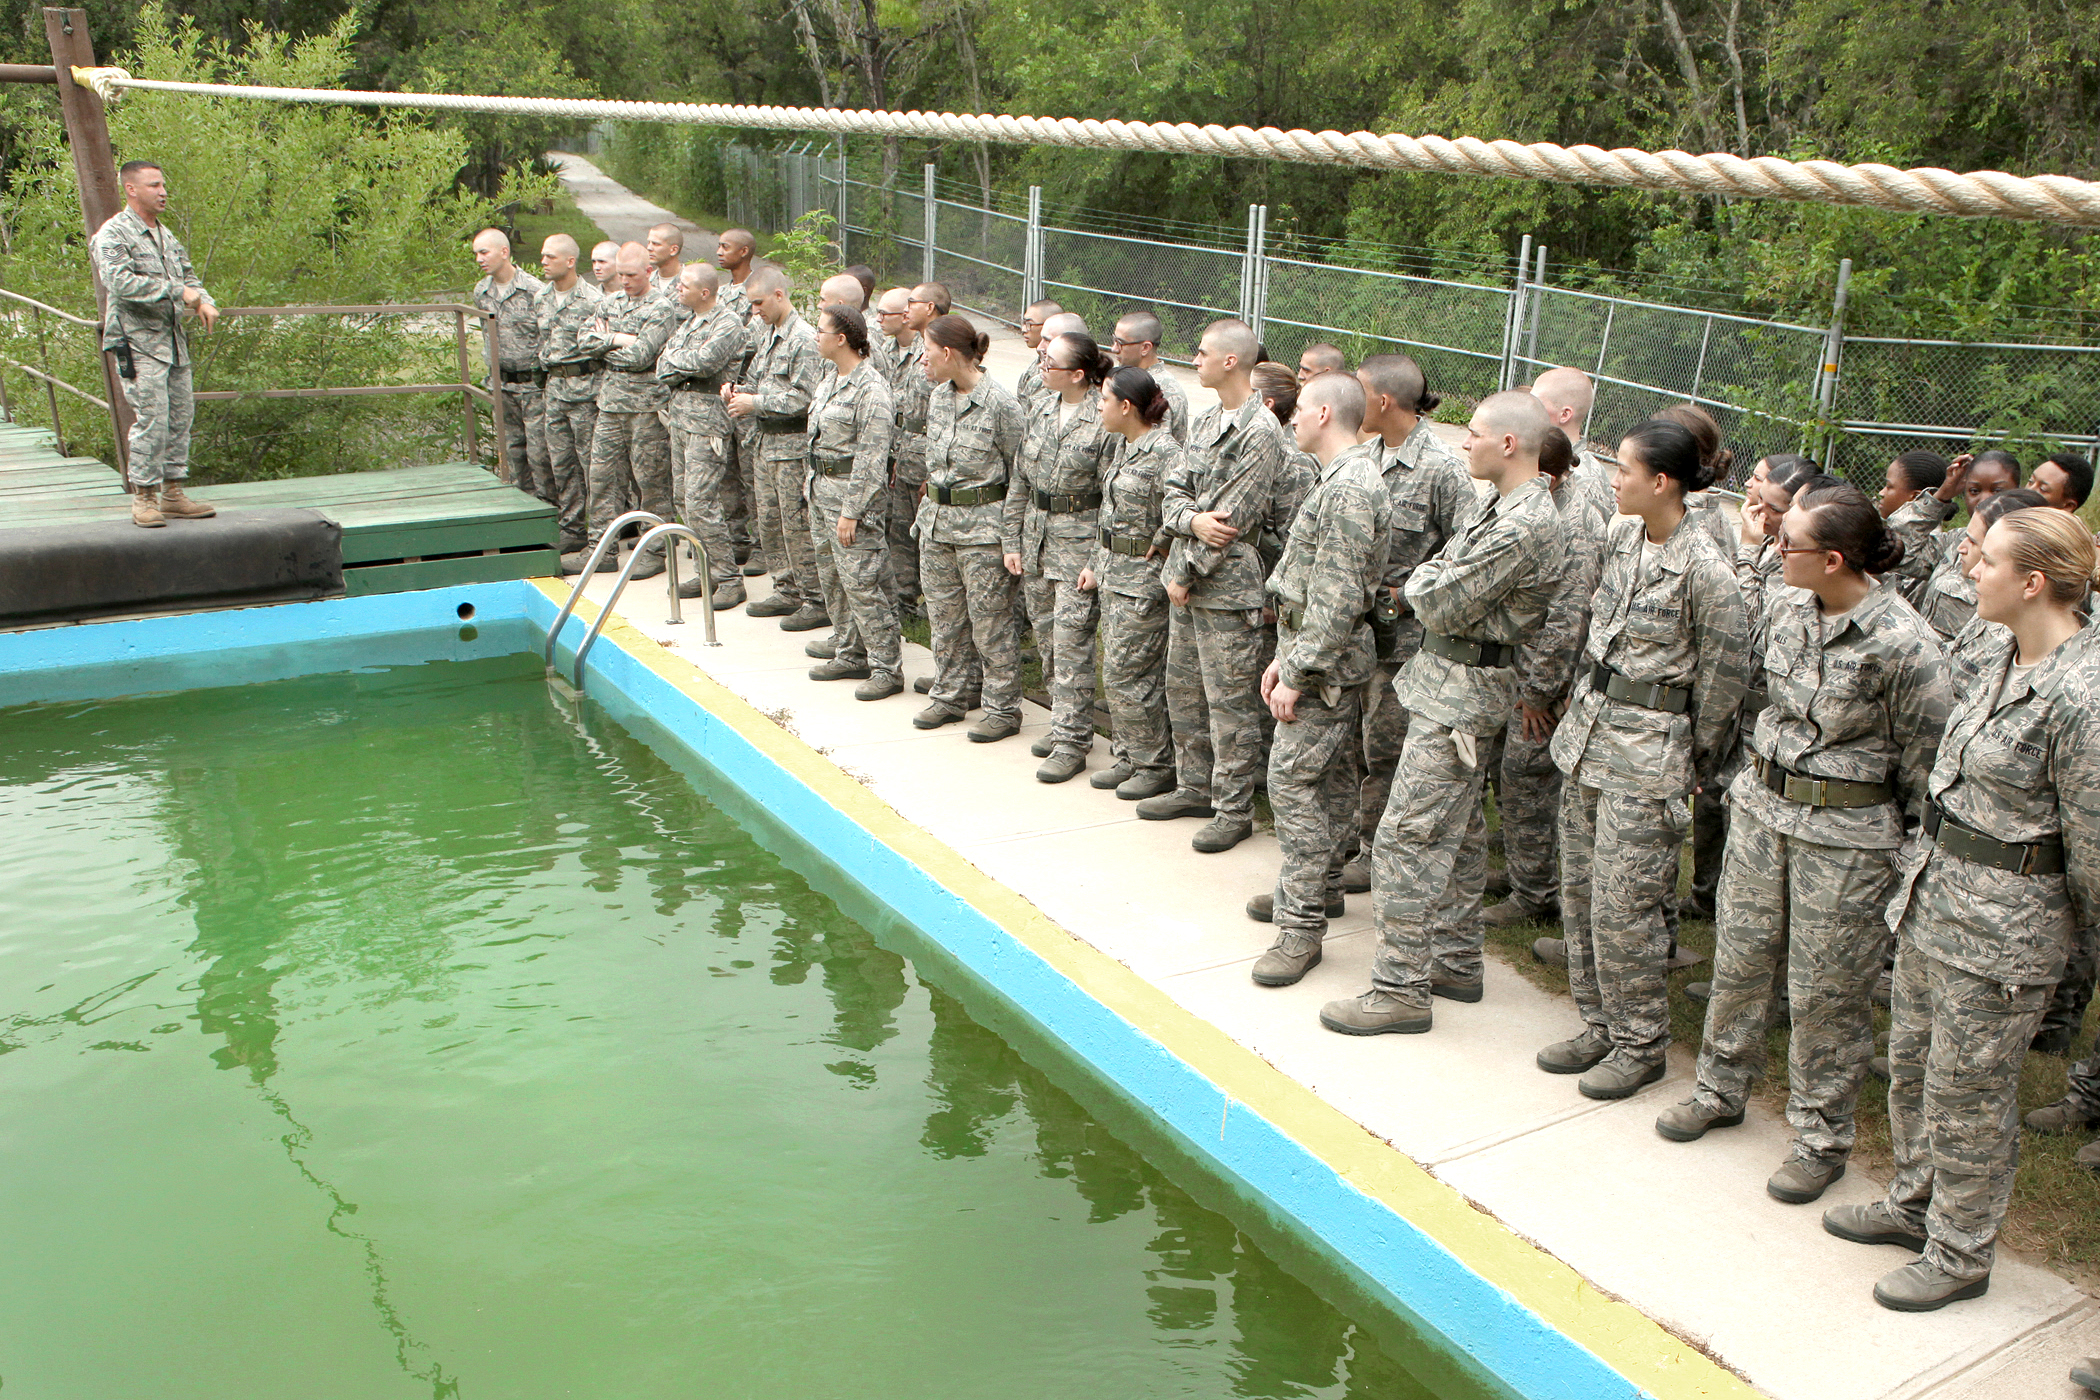 bhints Air Force Bases In Texas For Basic Training Articles